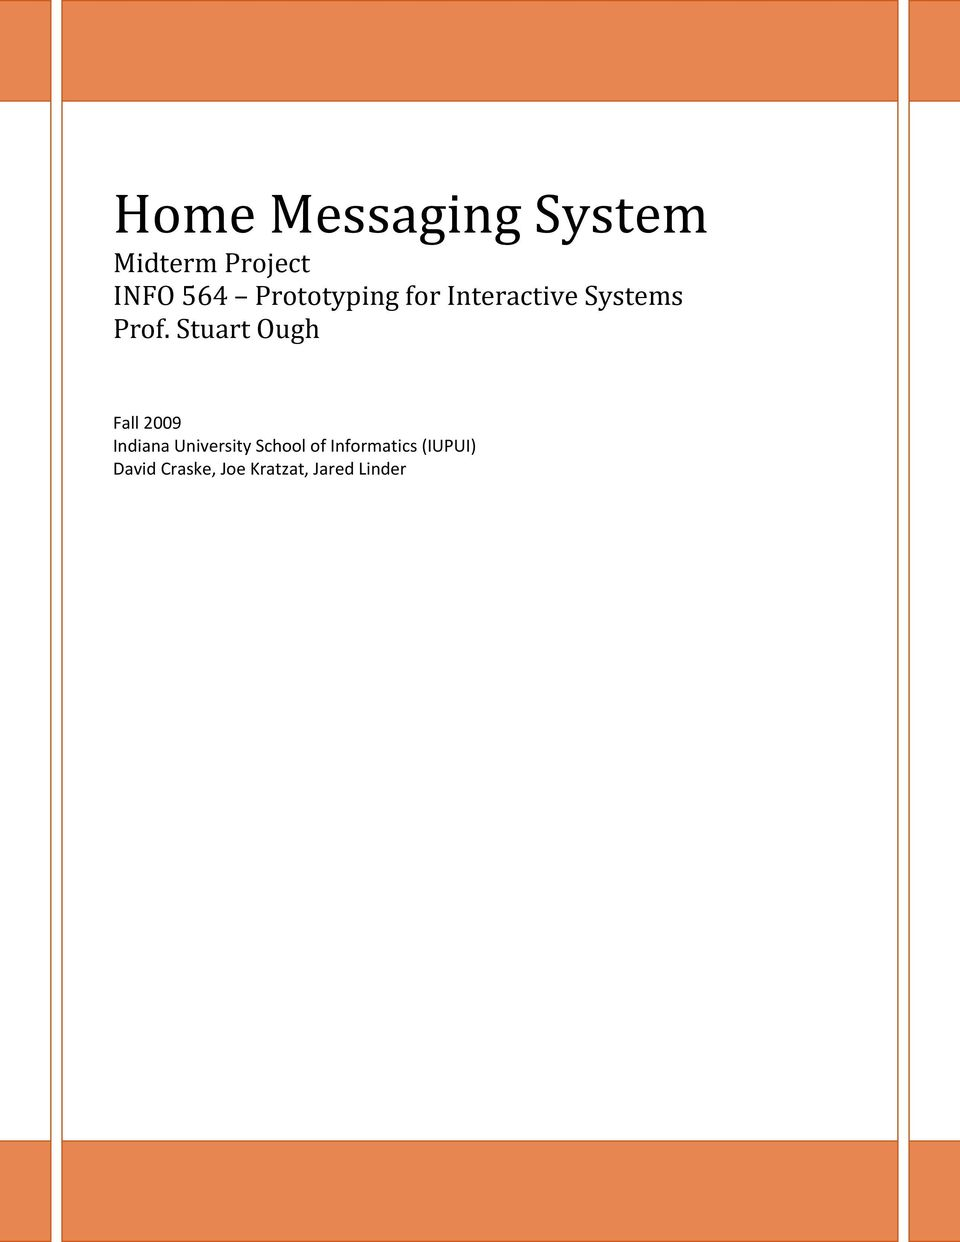 Home messaging system